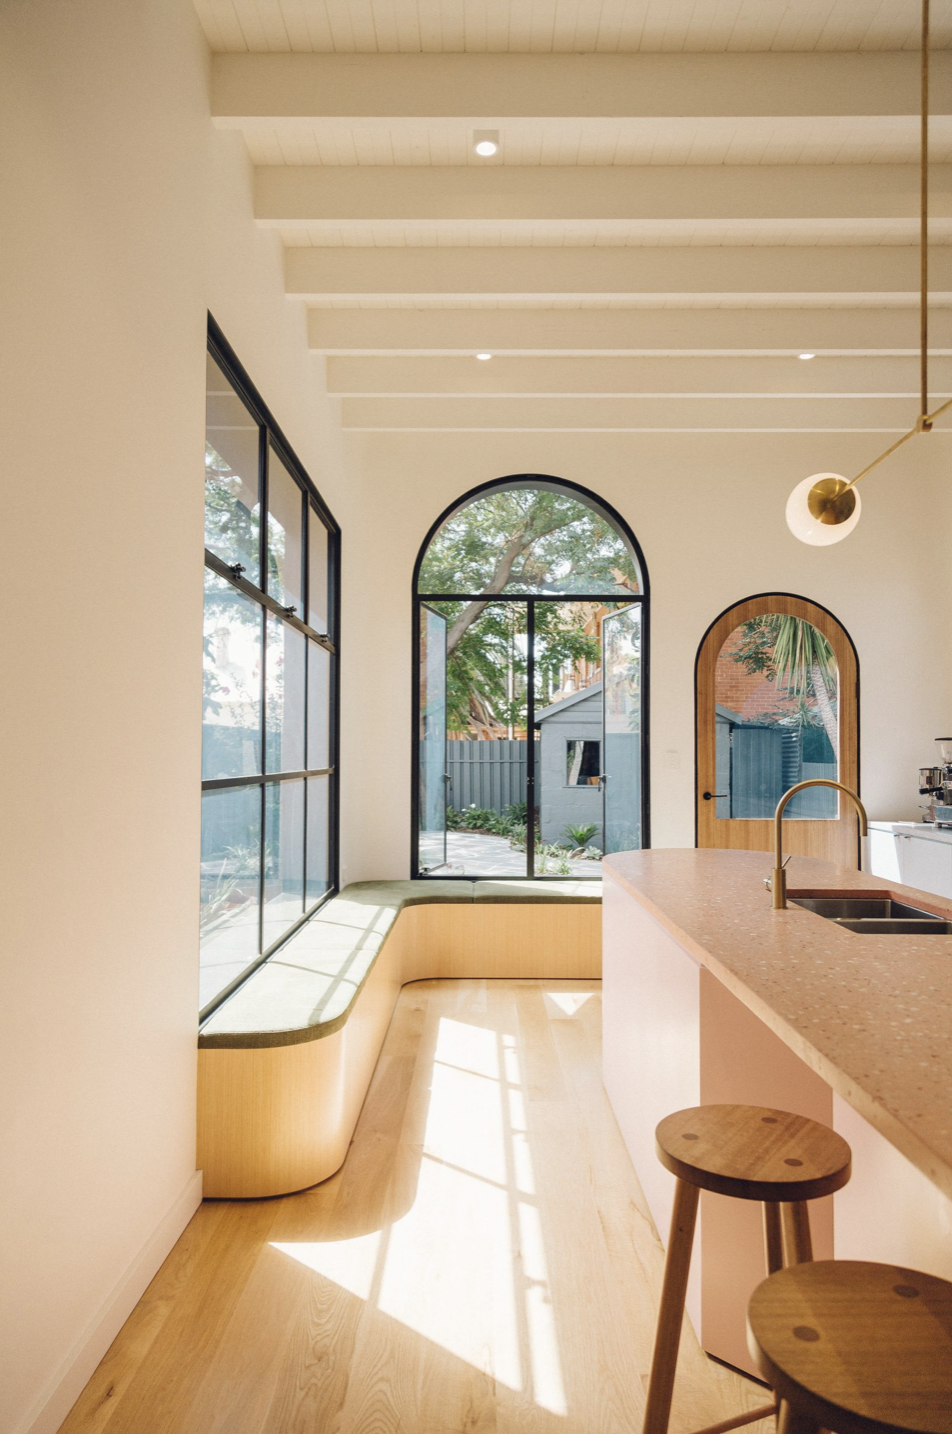 These arched windows and doors from Sans Arc Studio make this space feel extremely playful and elevated at the same time. I love the contrast of the dark window frame and mullionsand the light wood door. #arch #designtrend #interiors #organicmodern #kitchen #archwindow #archdetail